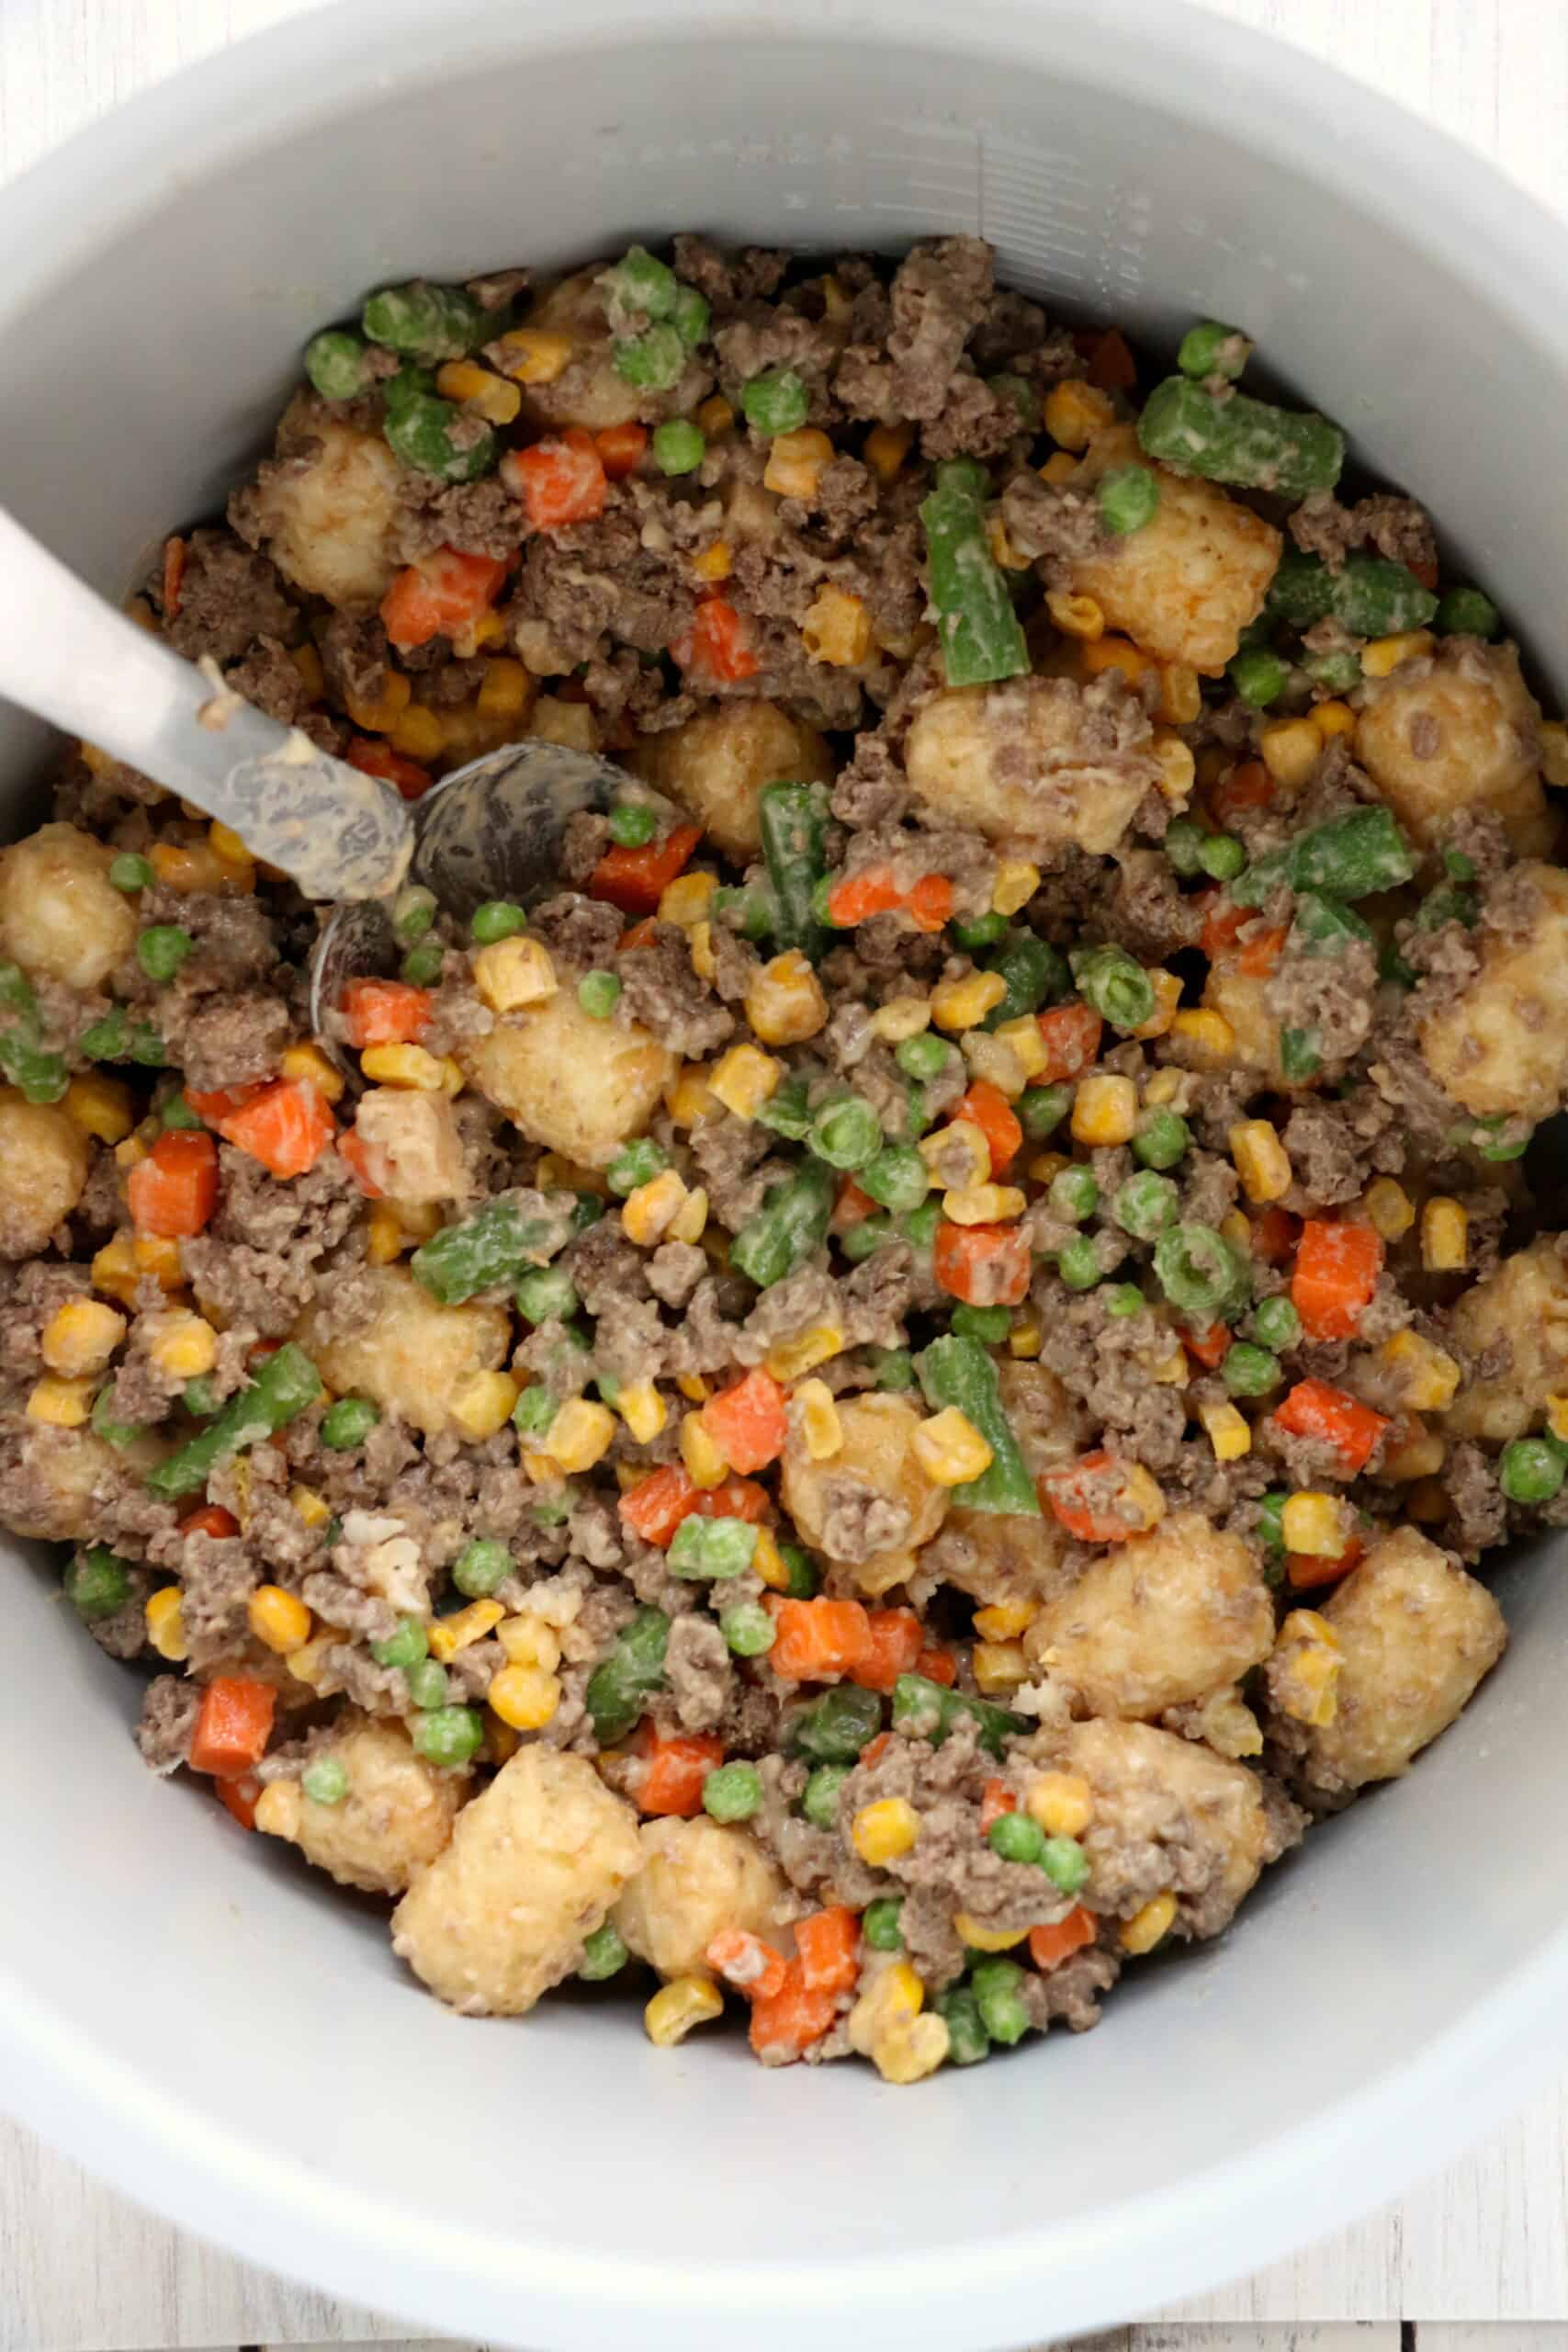 ground beef, frozen mixed vegetables, tater tater tots in a mixing bowl.